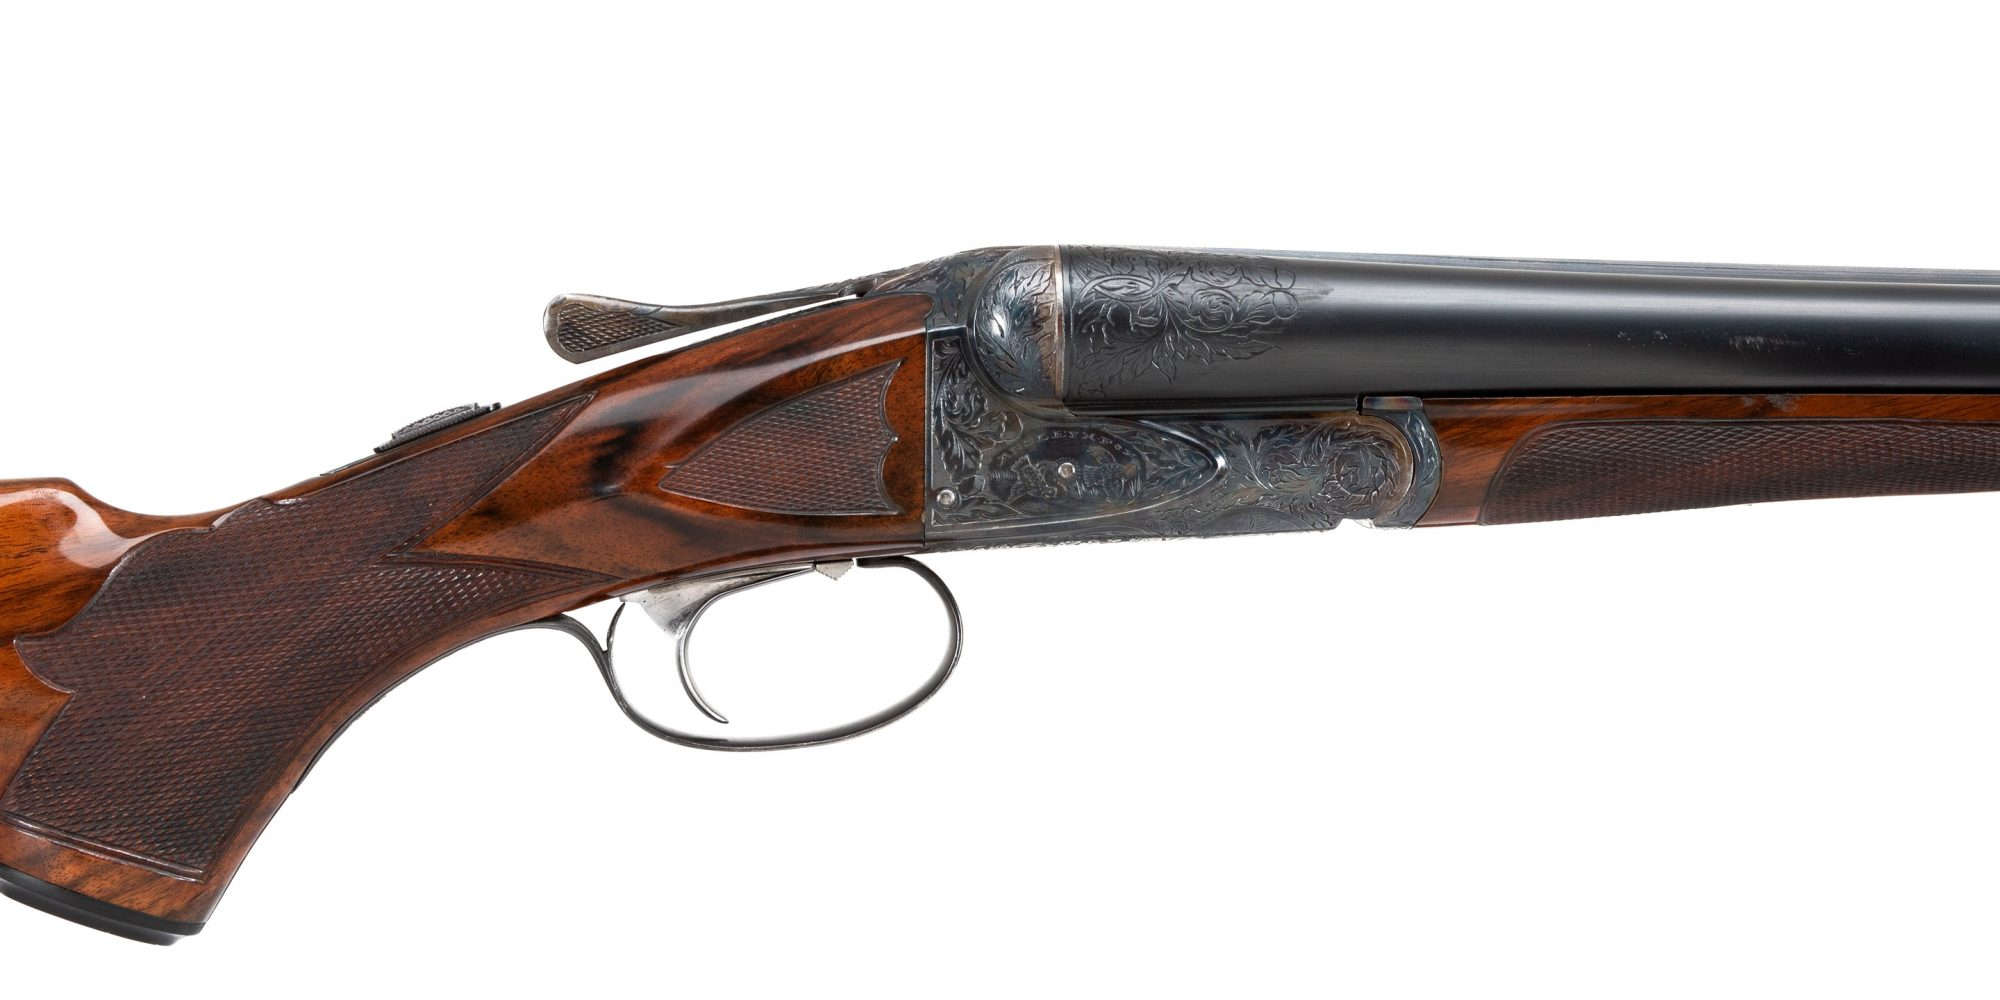 Photo of pre-owned A.H. Fox XE 12 gauge shotgun, featuring metal restoration by Turnbull Restoration